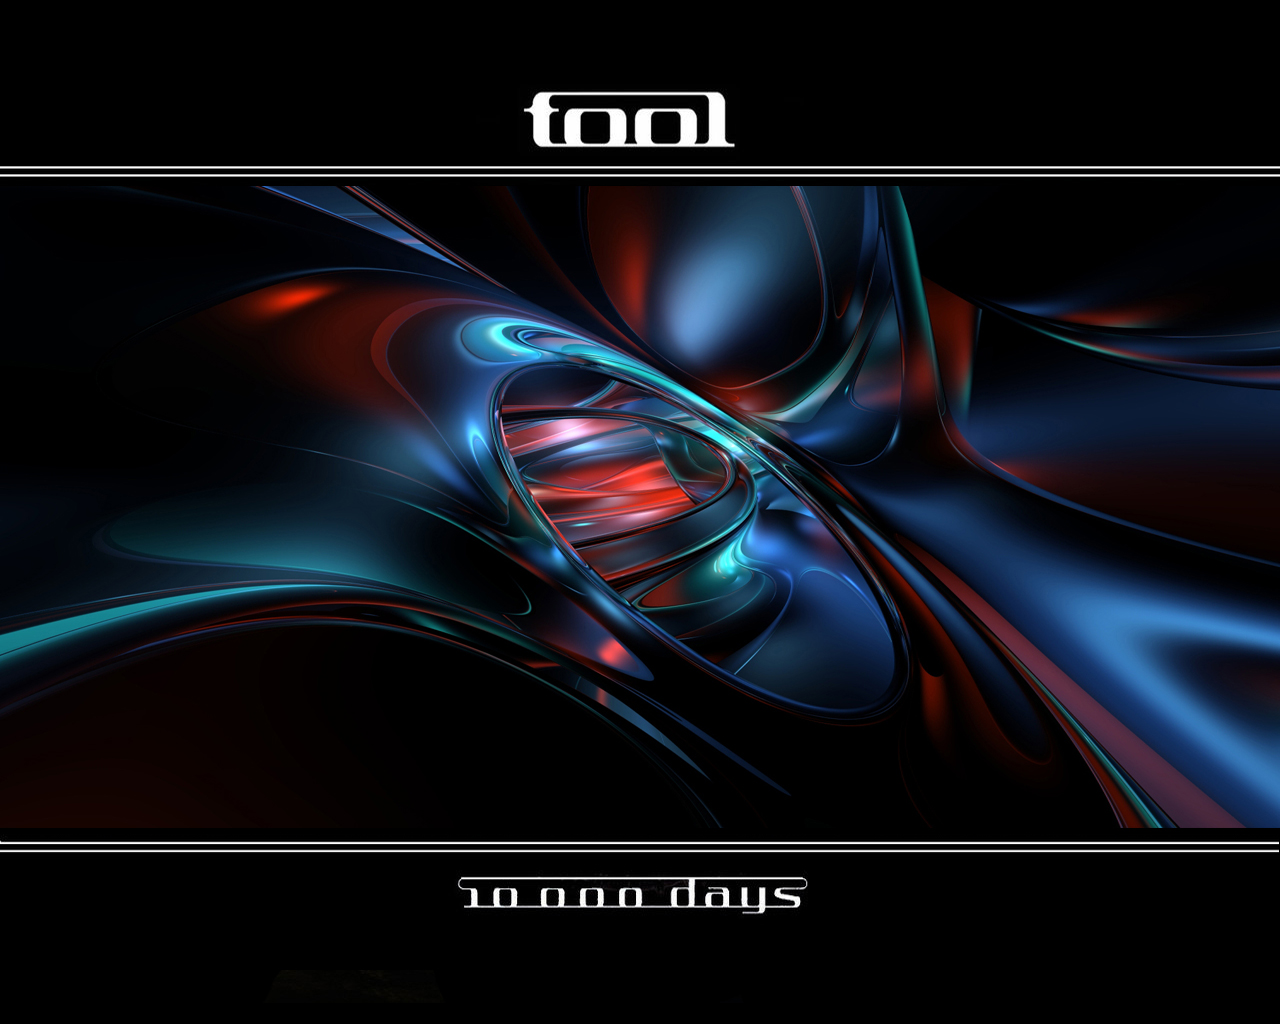 Tool Band Wallpaper Inside The Rainbow Fractal Abstracthigh